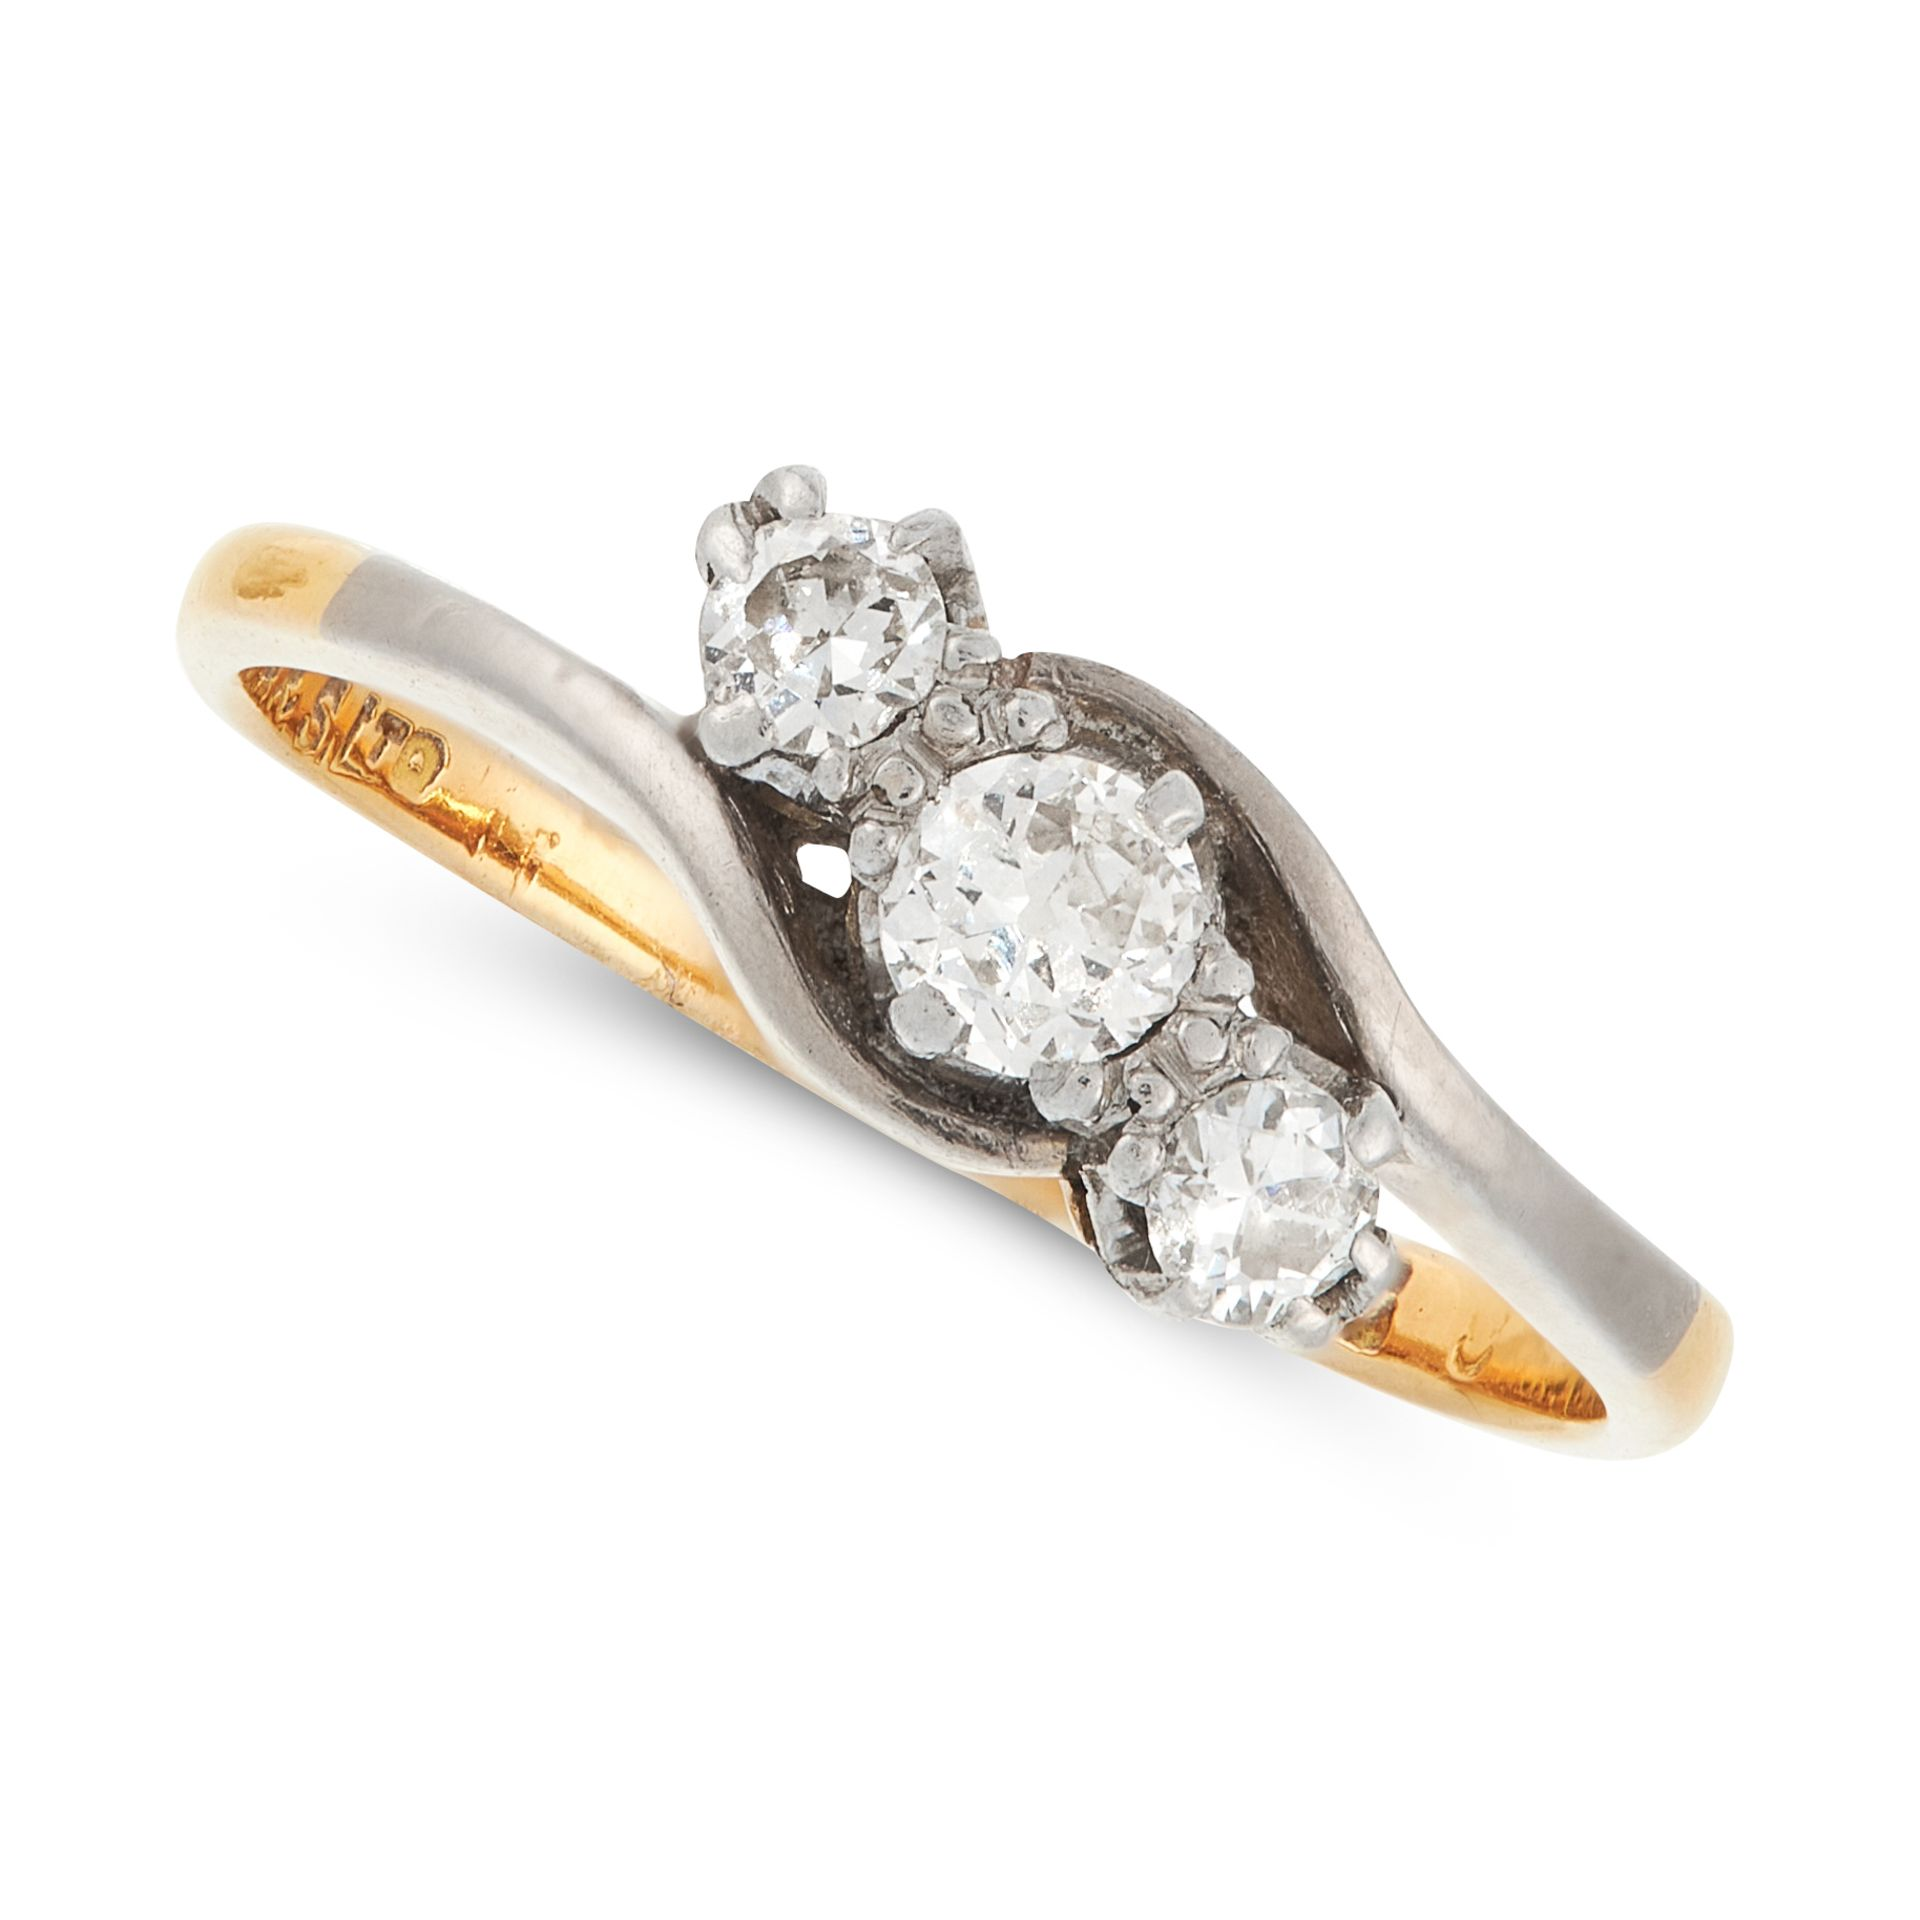 A DIAMOND THREE STONE RING in yellow gold, the twisted shank is set with a trio of old and round cut